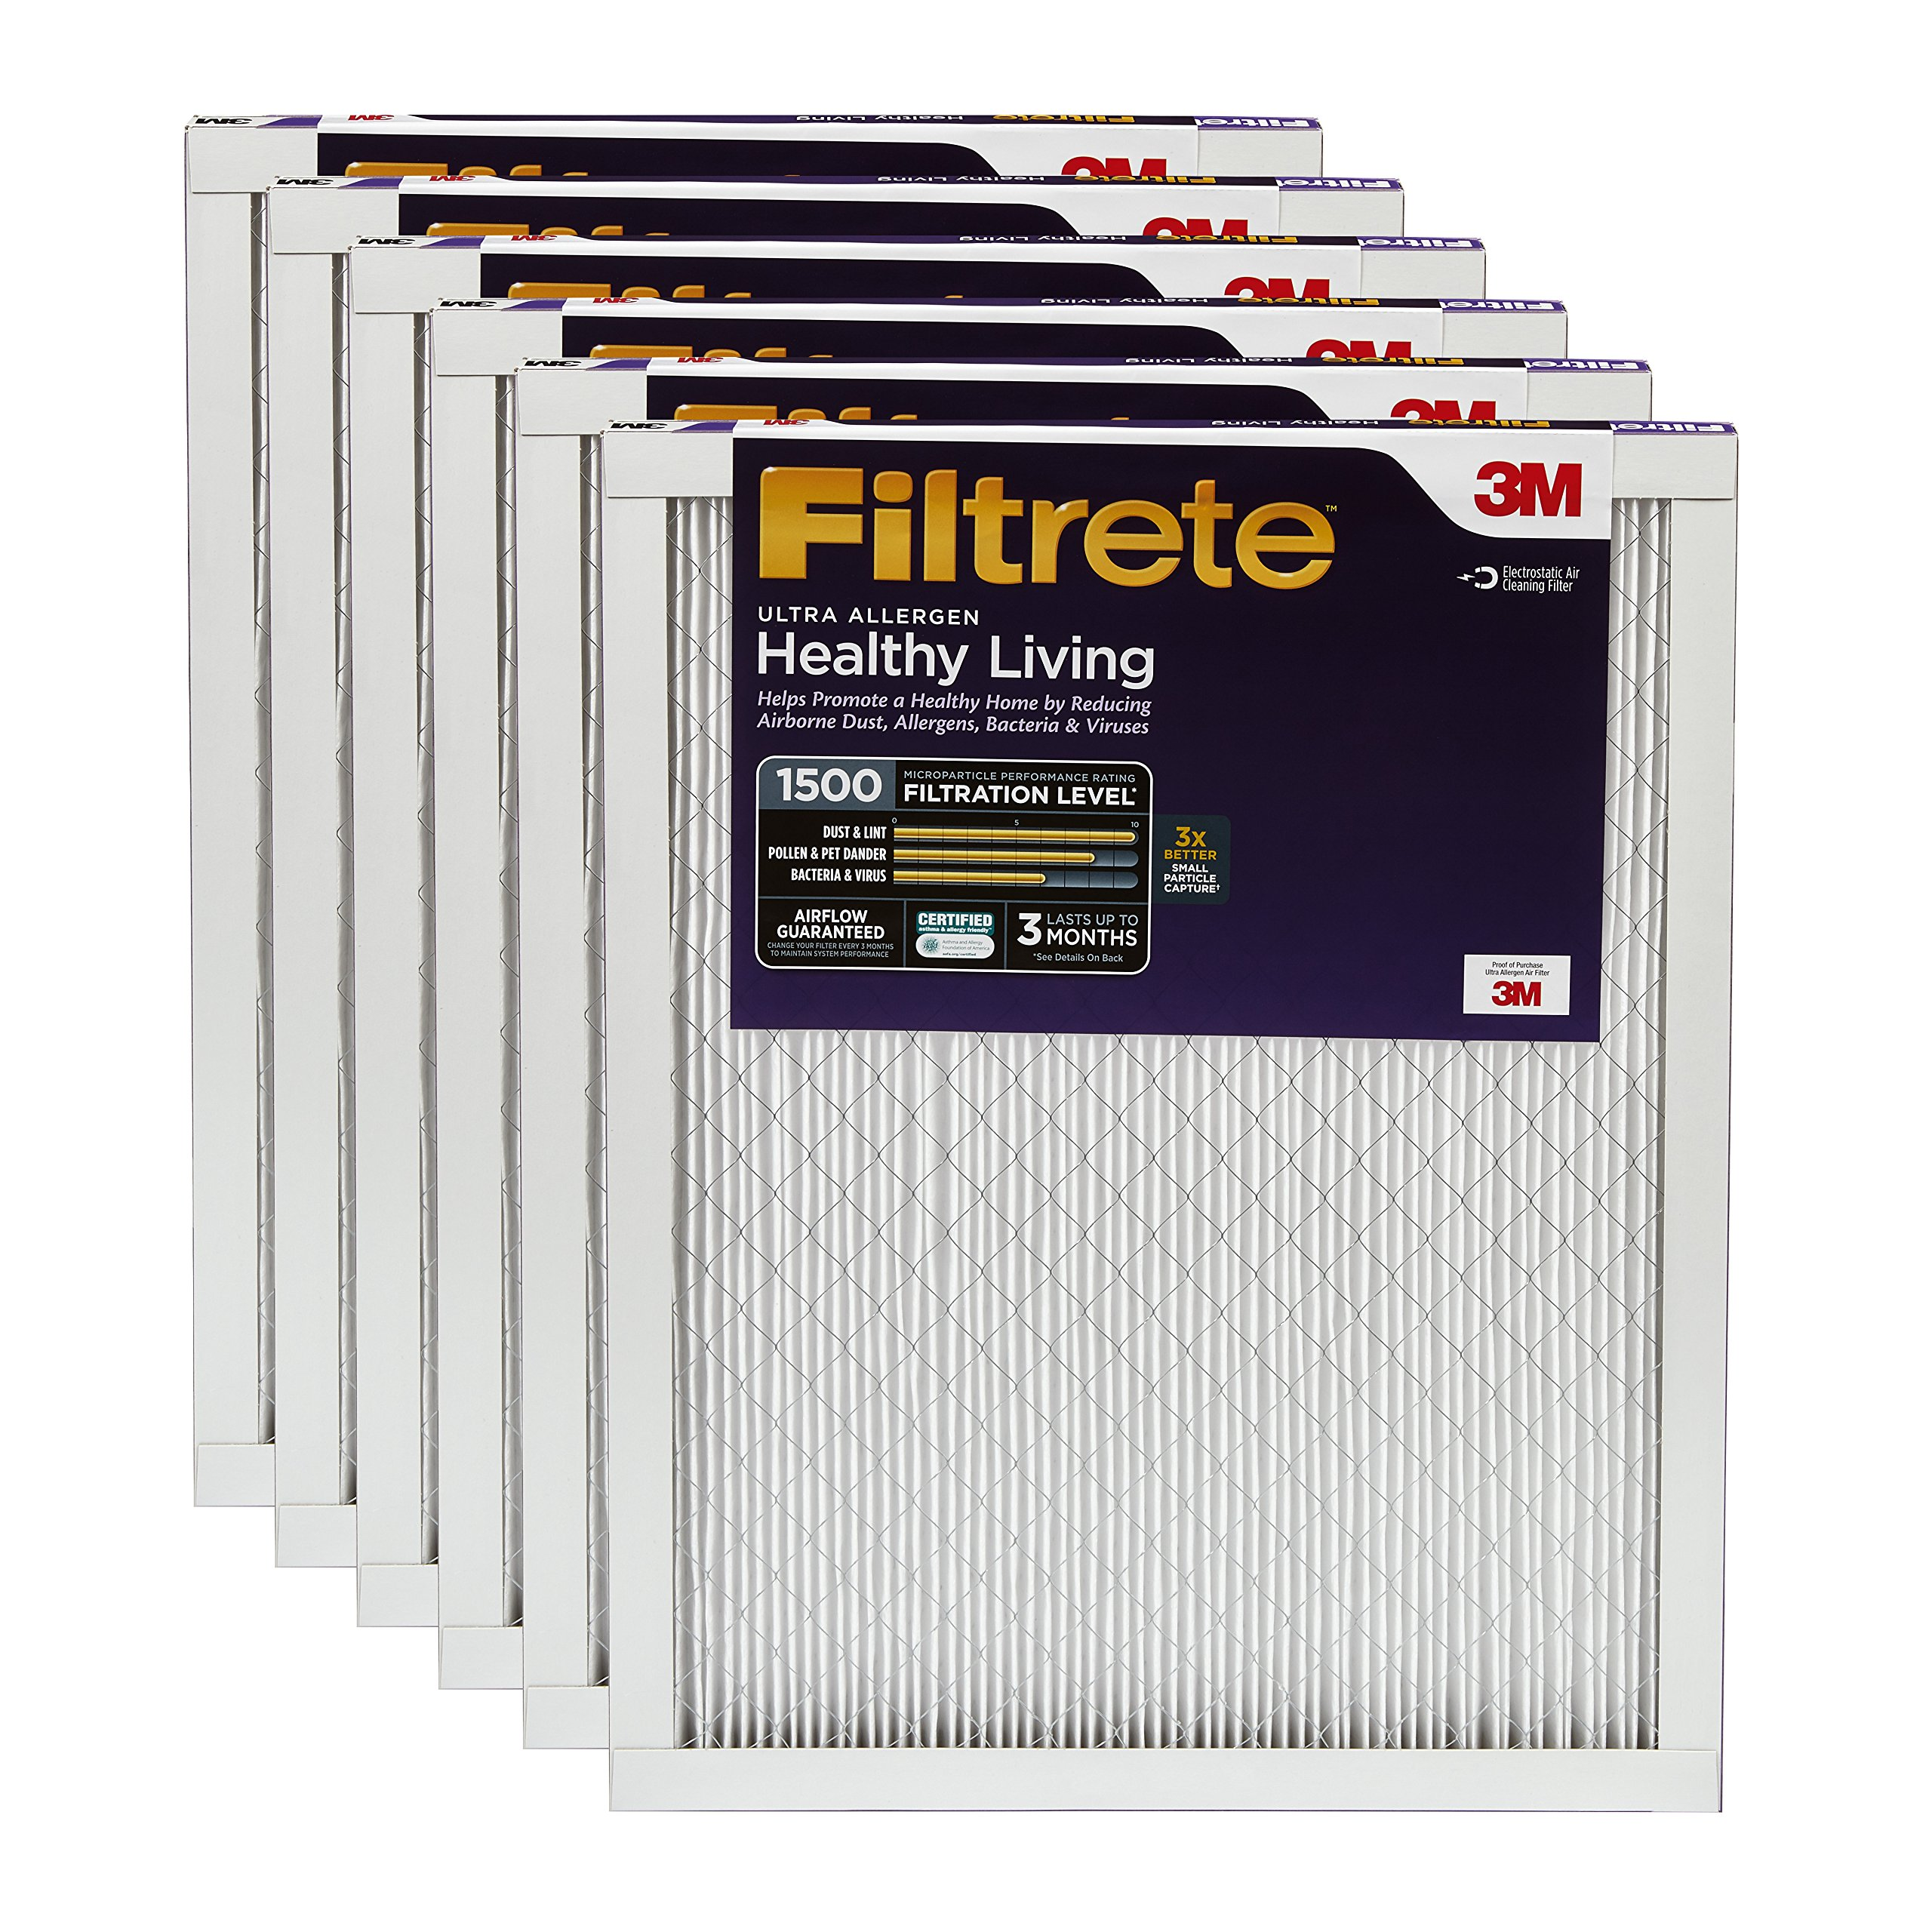 Filtrete Healthy Living Ultra Allergen Reduction AC Furnace Air Filter, Guaranteed Airflow up to 90 days, MPR 1500, 20 x 30 x 1, 6-Pack